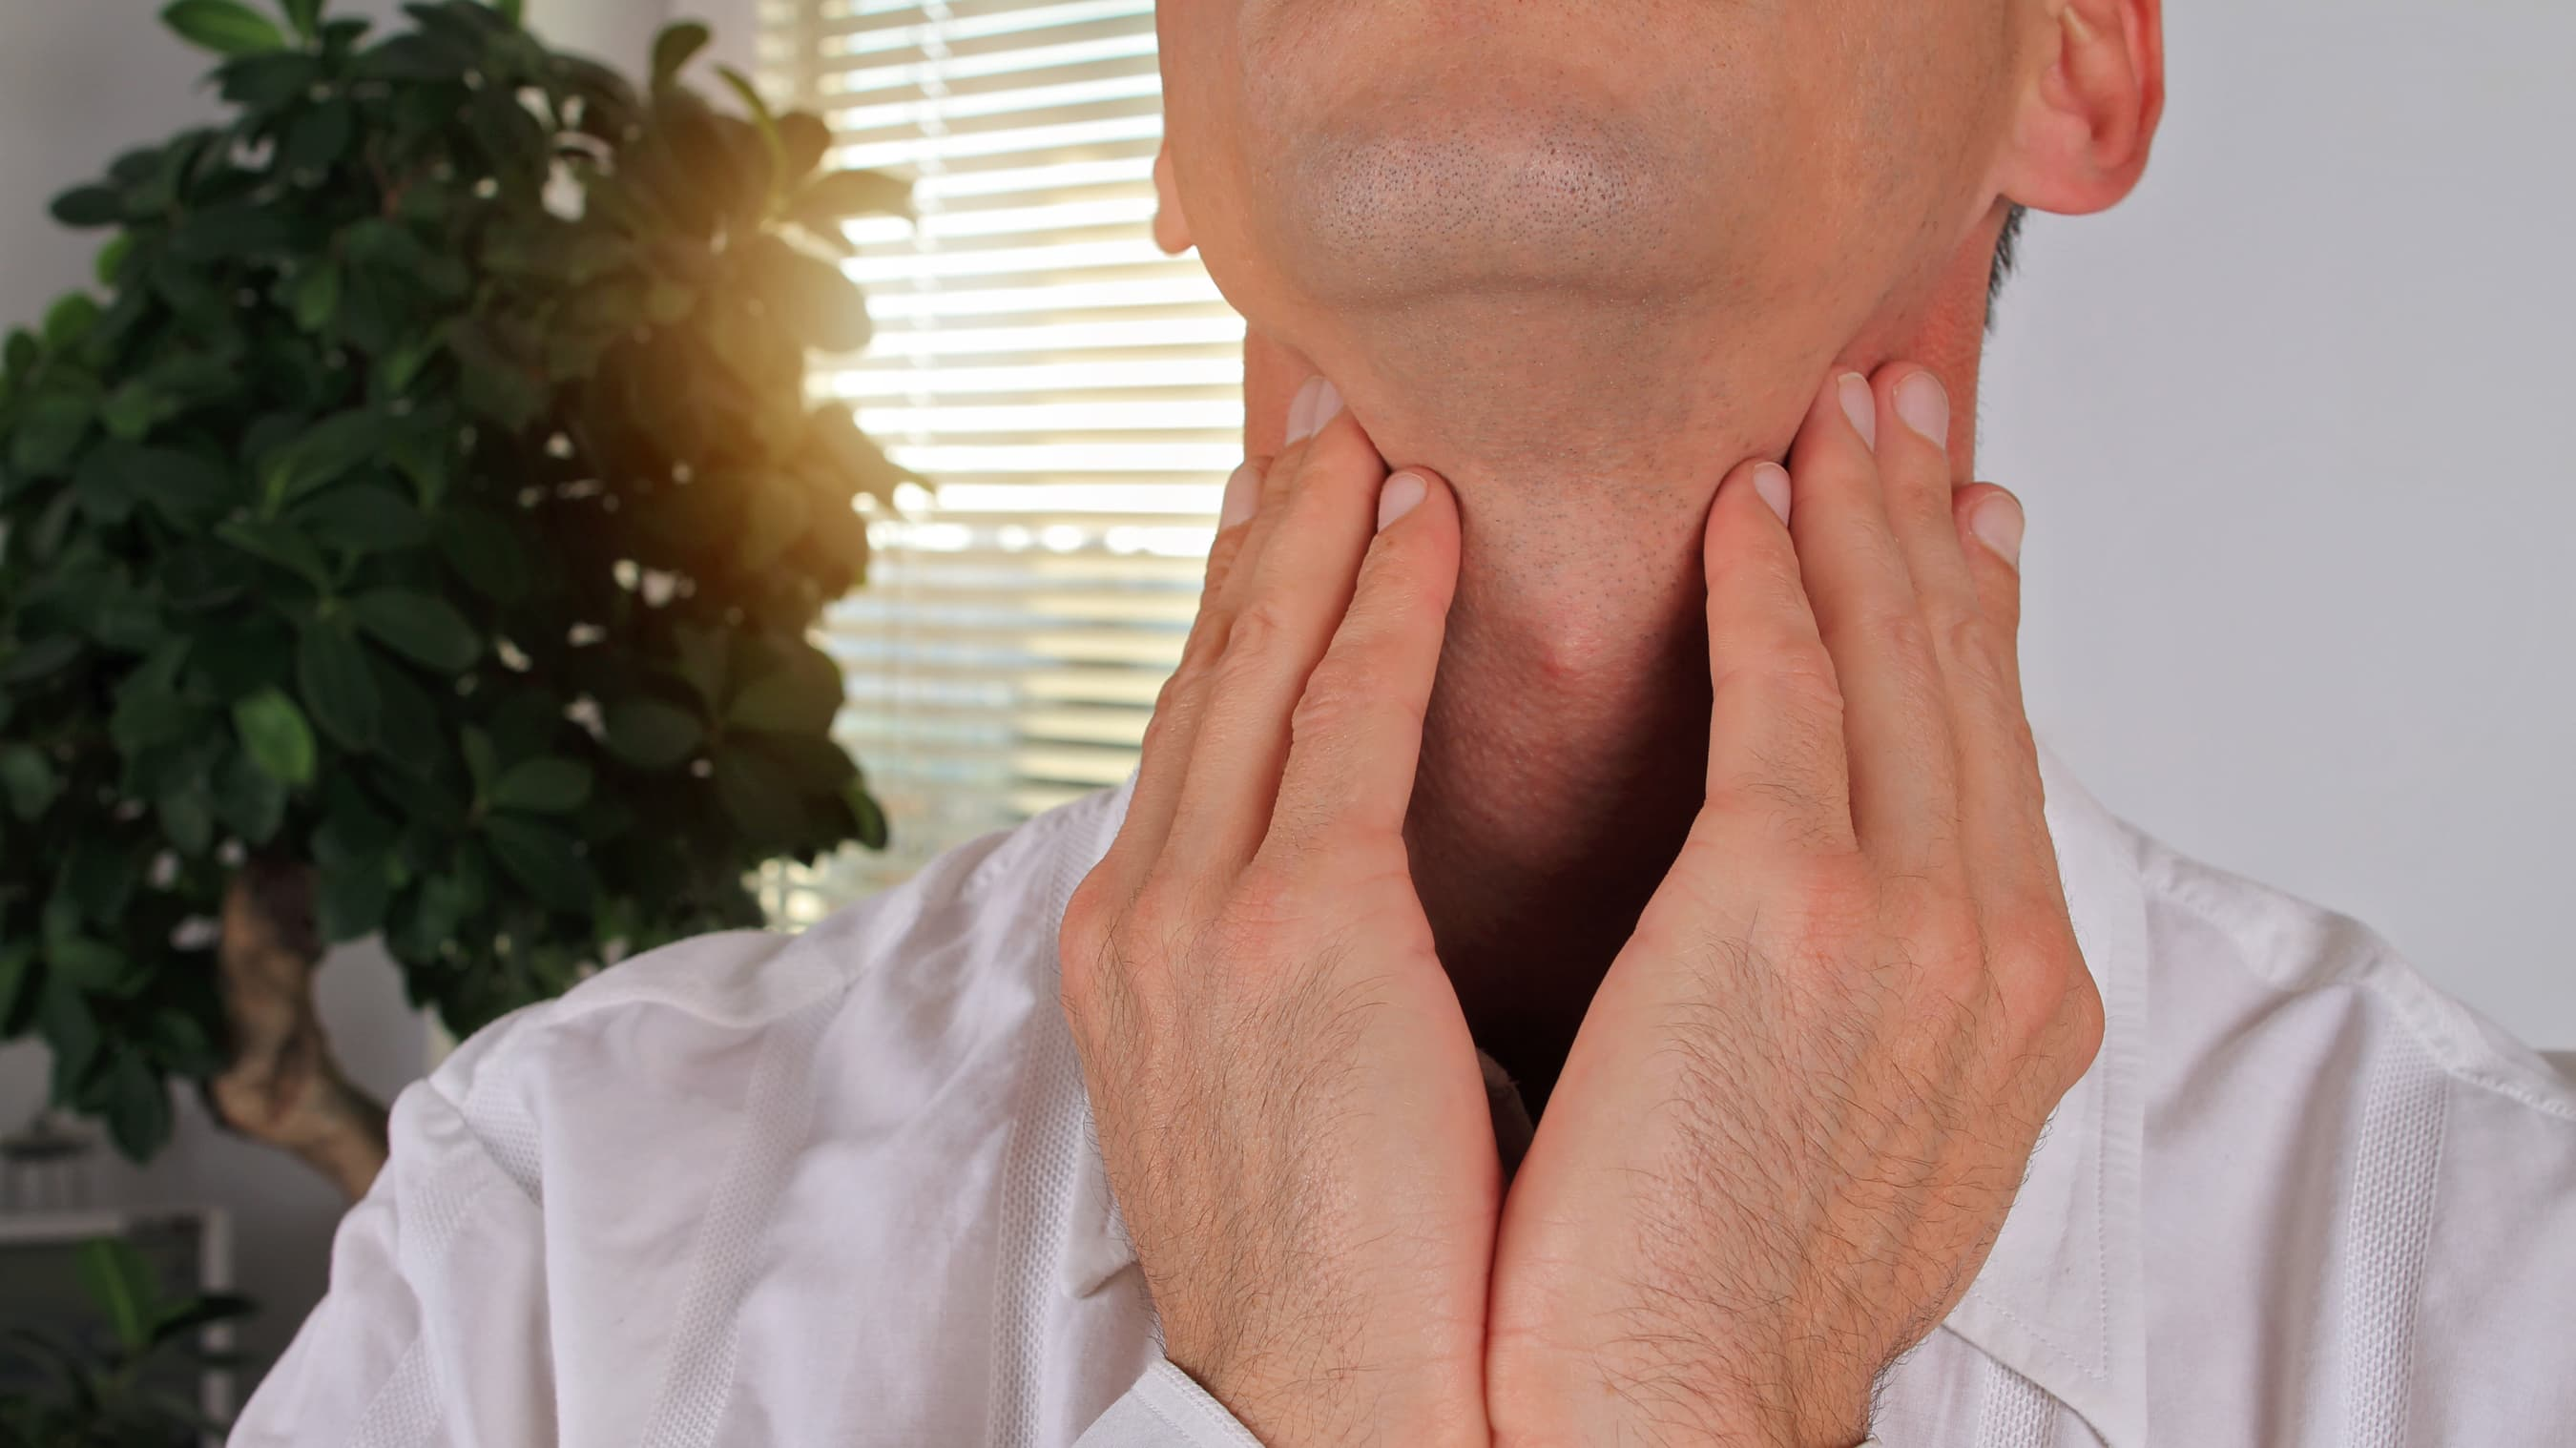 A person who may need radiation therapy for esophageal cancer holds his neck with two hands.